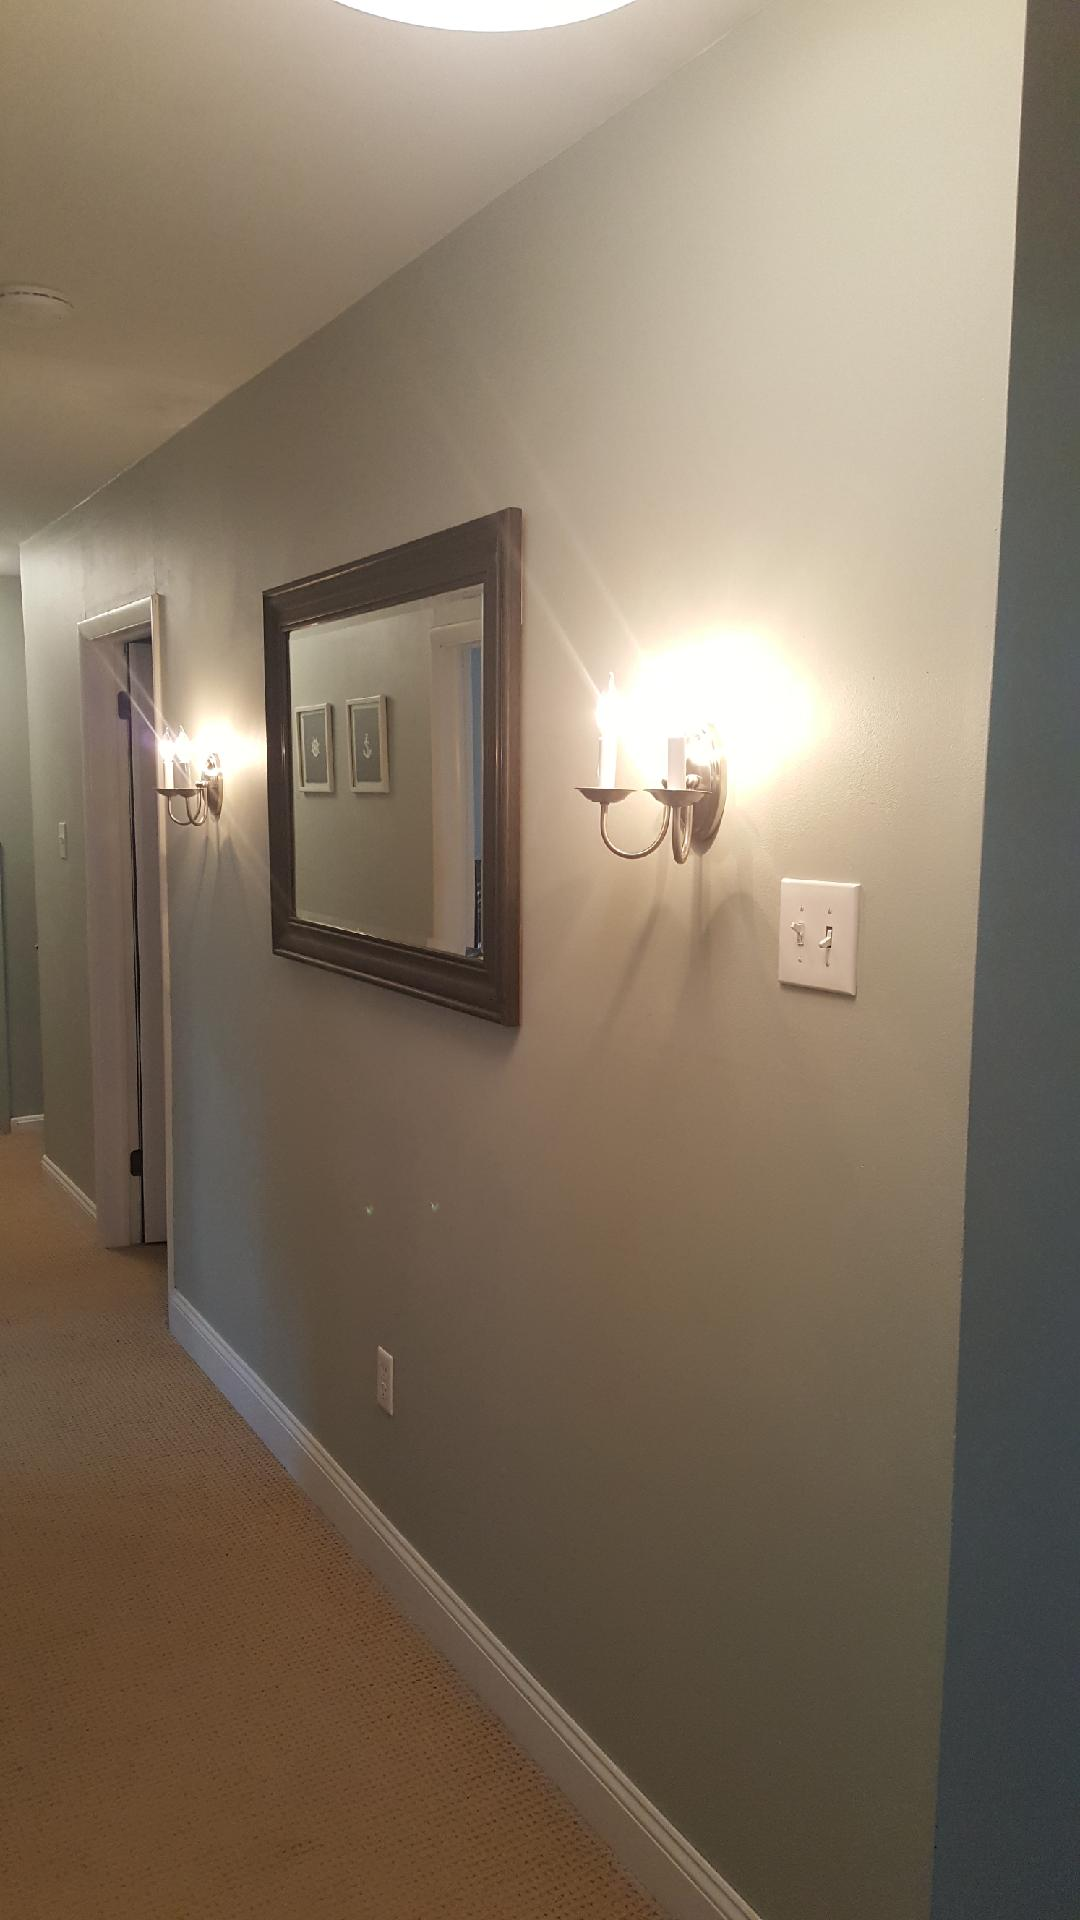 Wall Sconces The Must Have Home Interior Lighting Fixtures